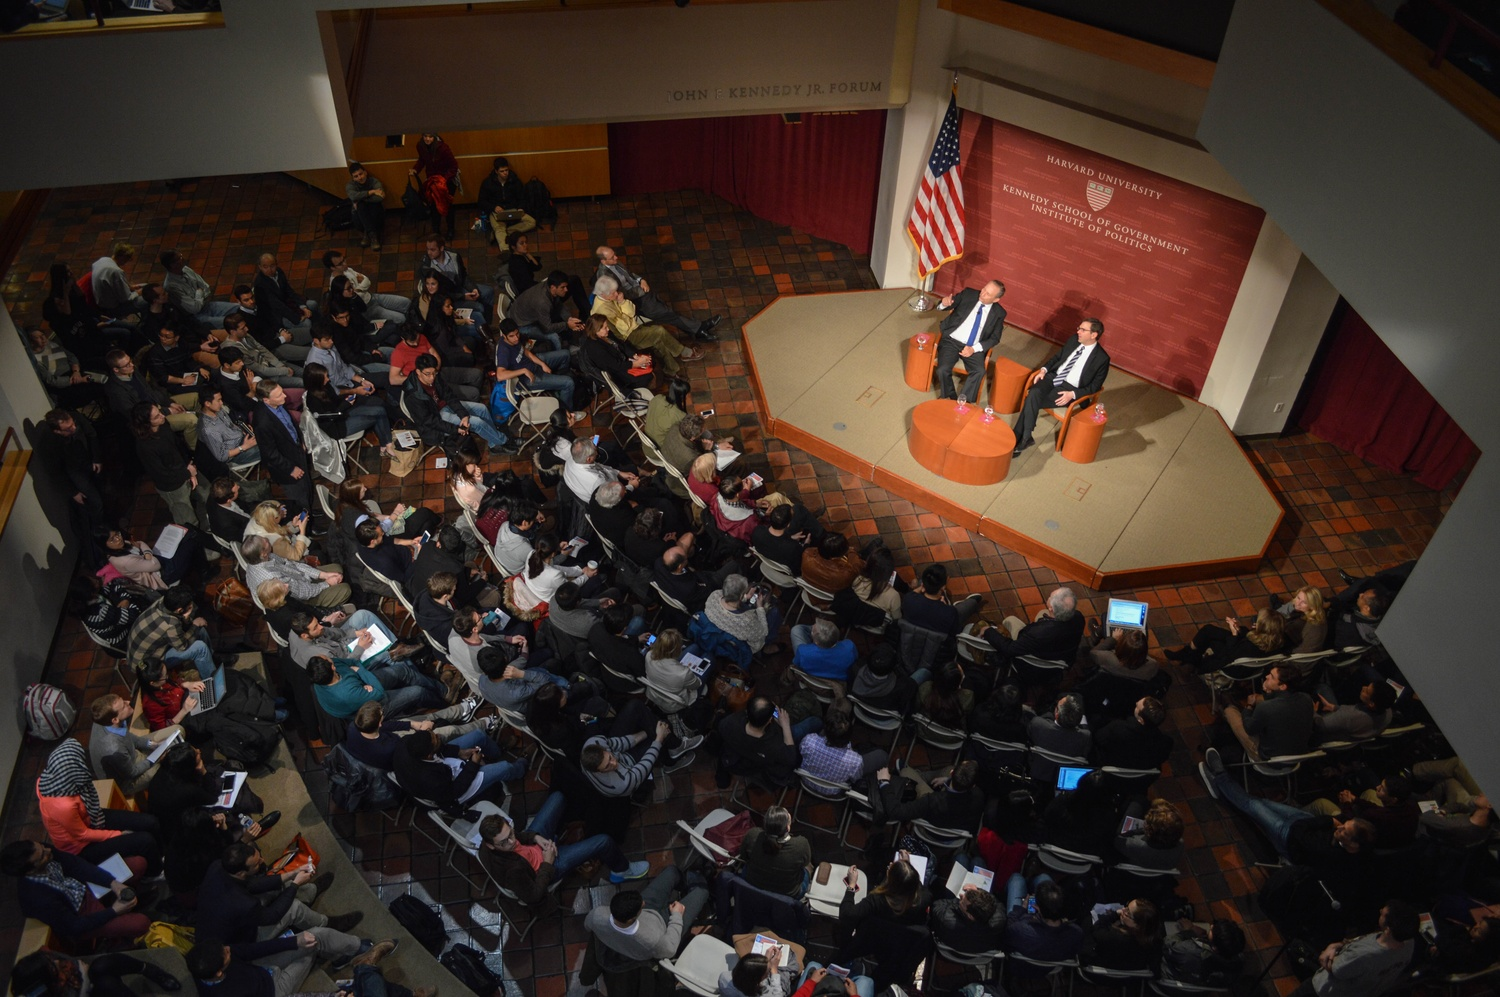 Speaking about economic trends in recent years and fielding questions from the crowd, Lawrence H. Summers and Jason Furman attracted a crowd that fills the seats at the Institute of Politics Monday evening.